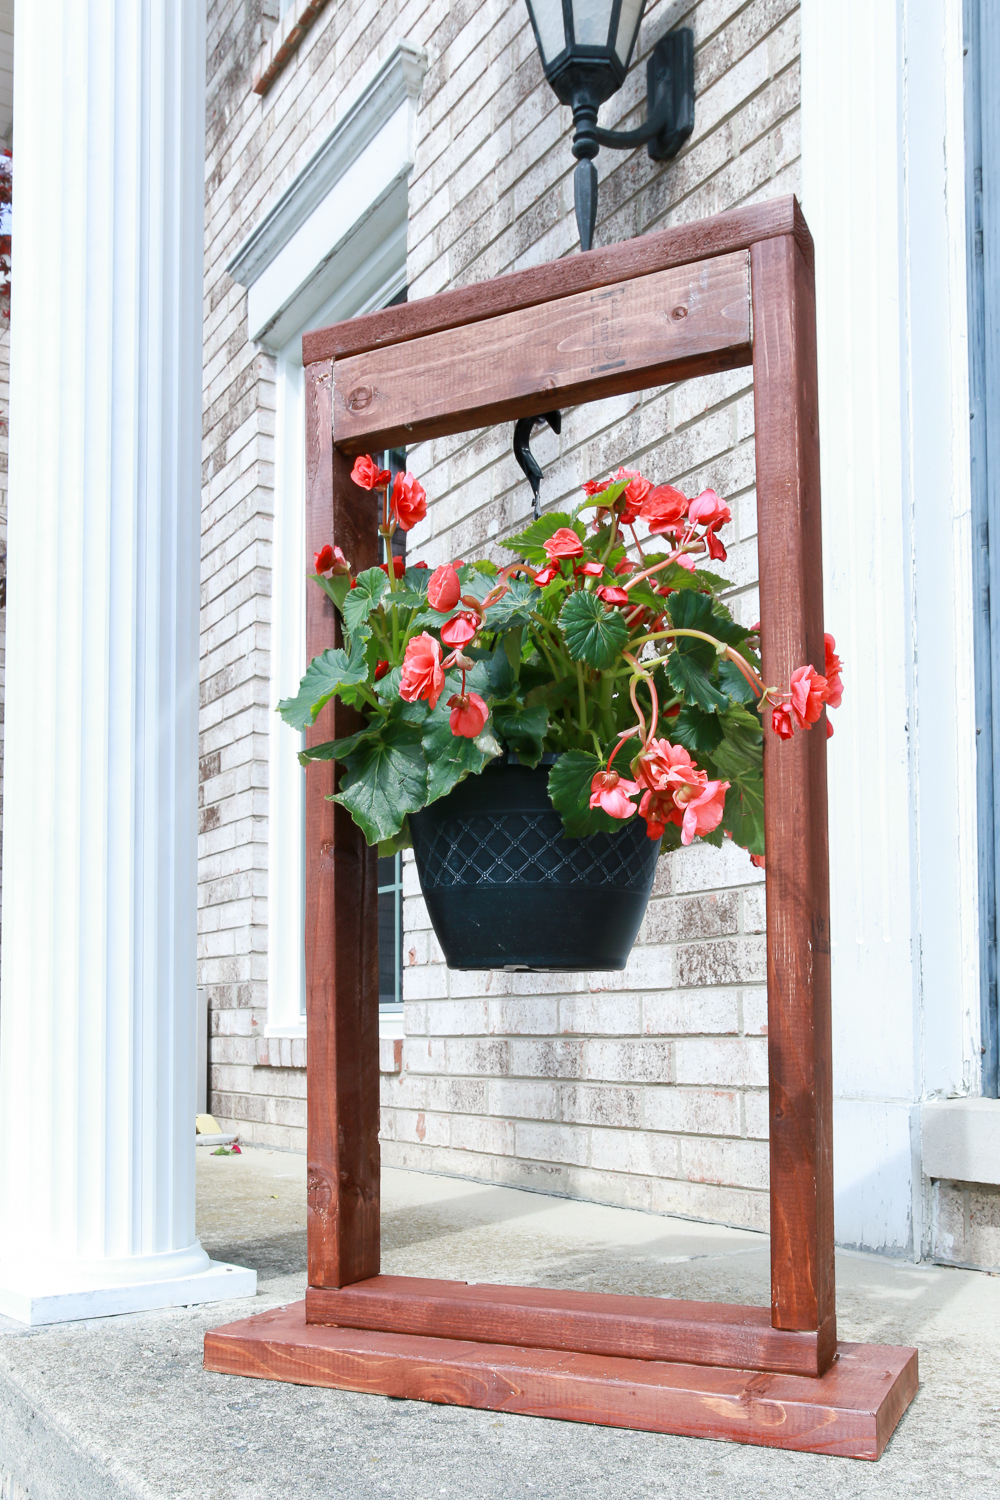 Outdoor hanging plants